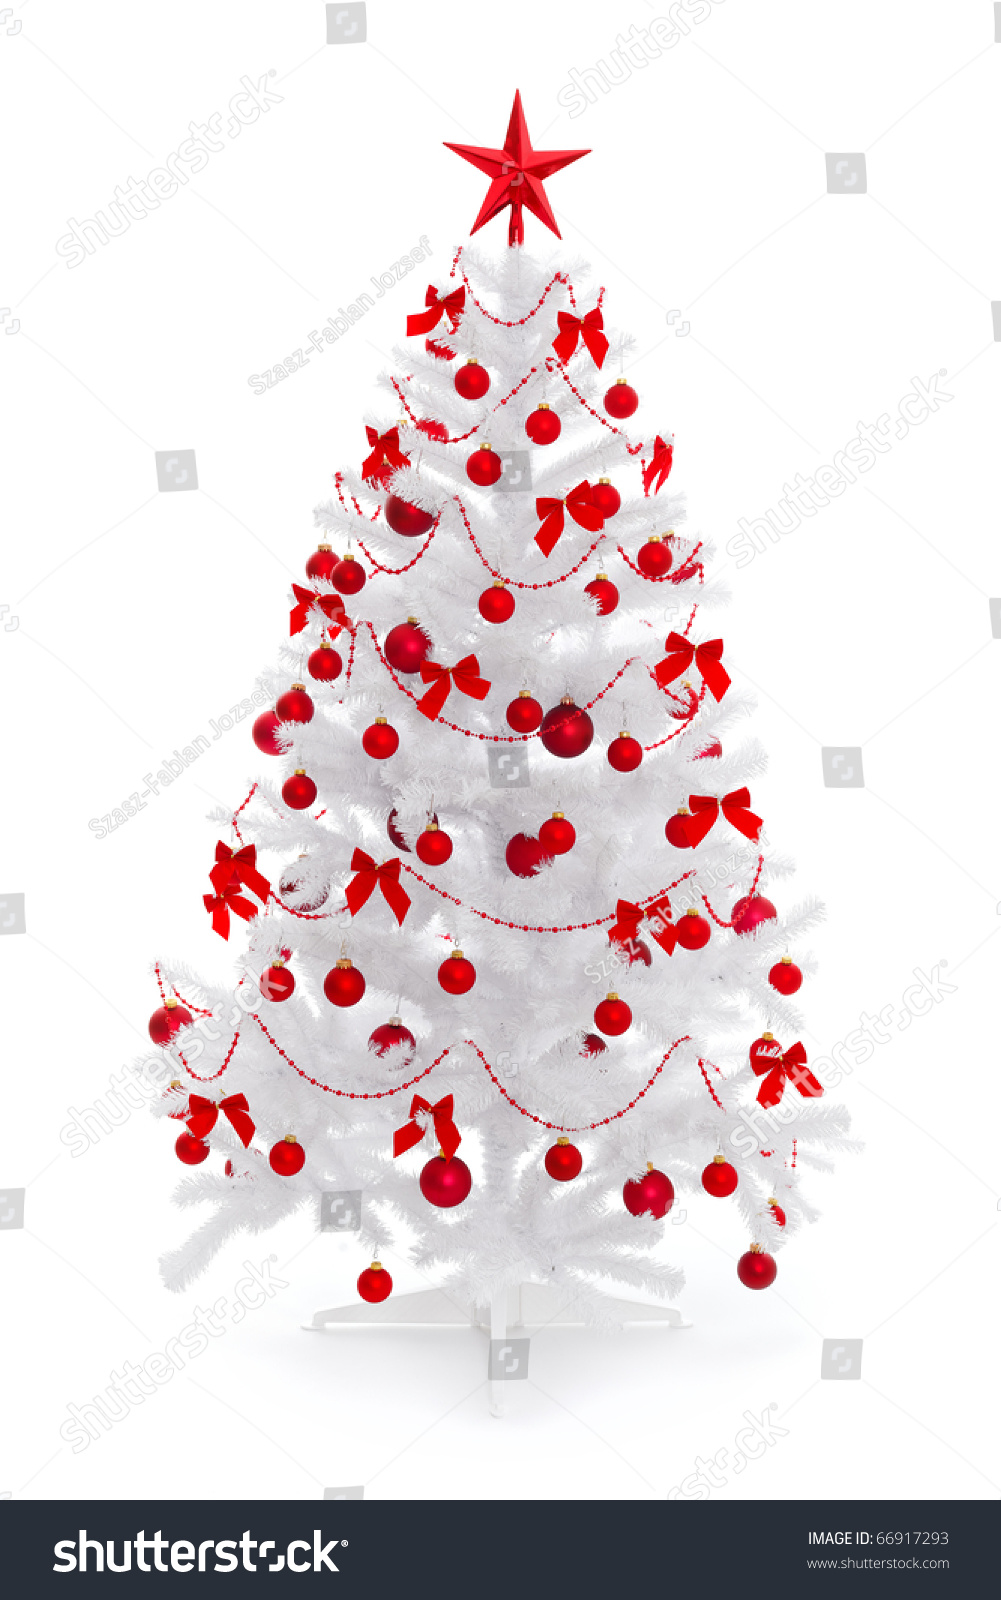 White christmas tree with red decorations - White Christmas Tree With Red Decoration Isolated On White Preview Save To A Lightbox